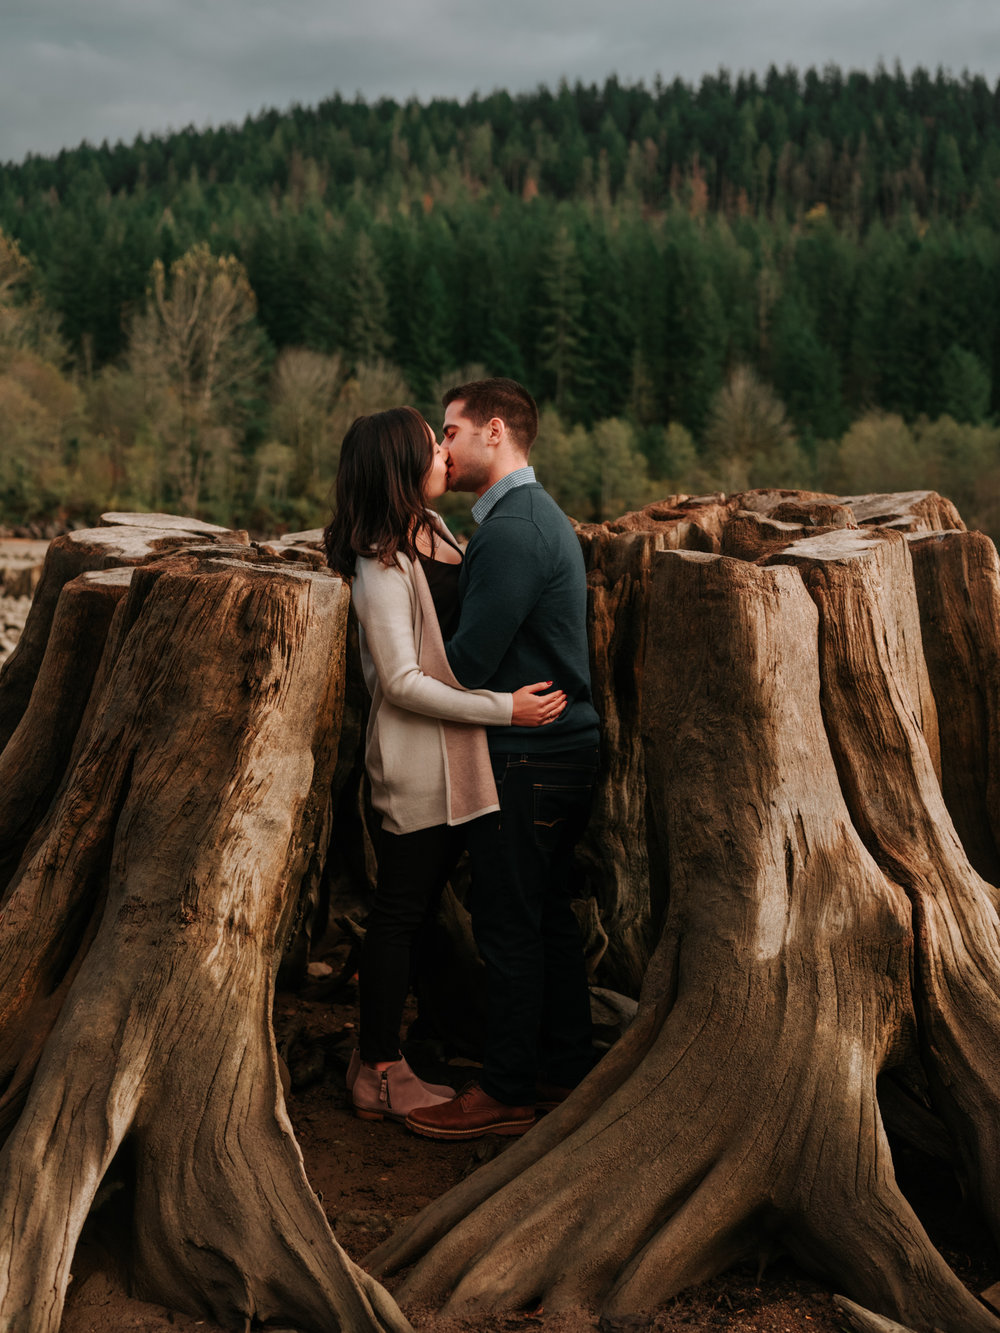 Seattle Engagement Photographer_Stolen Glimpses 49.jpg